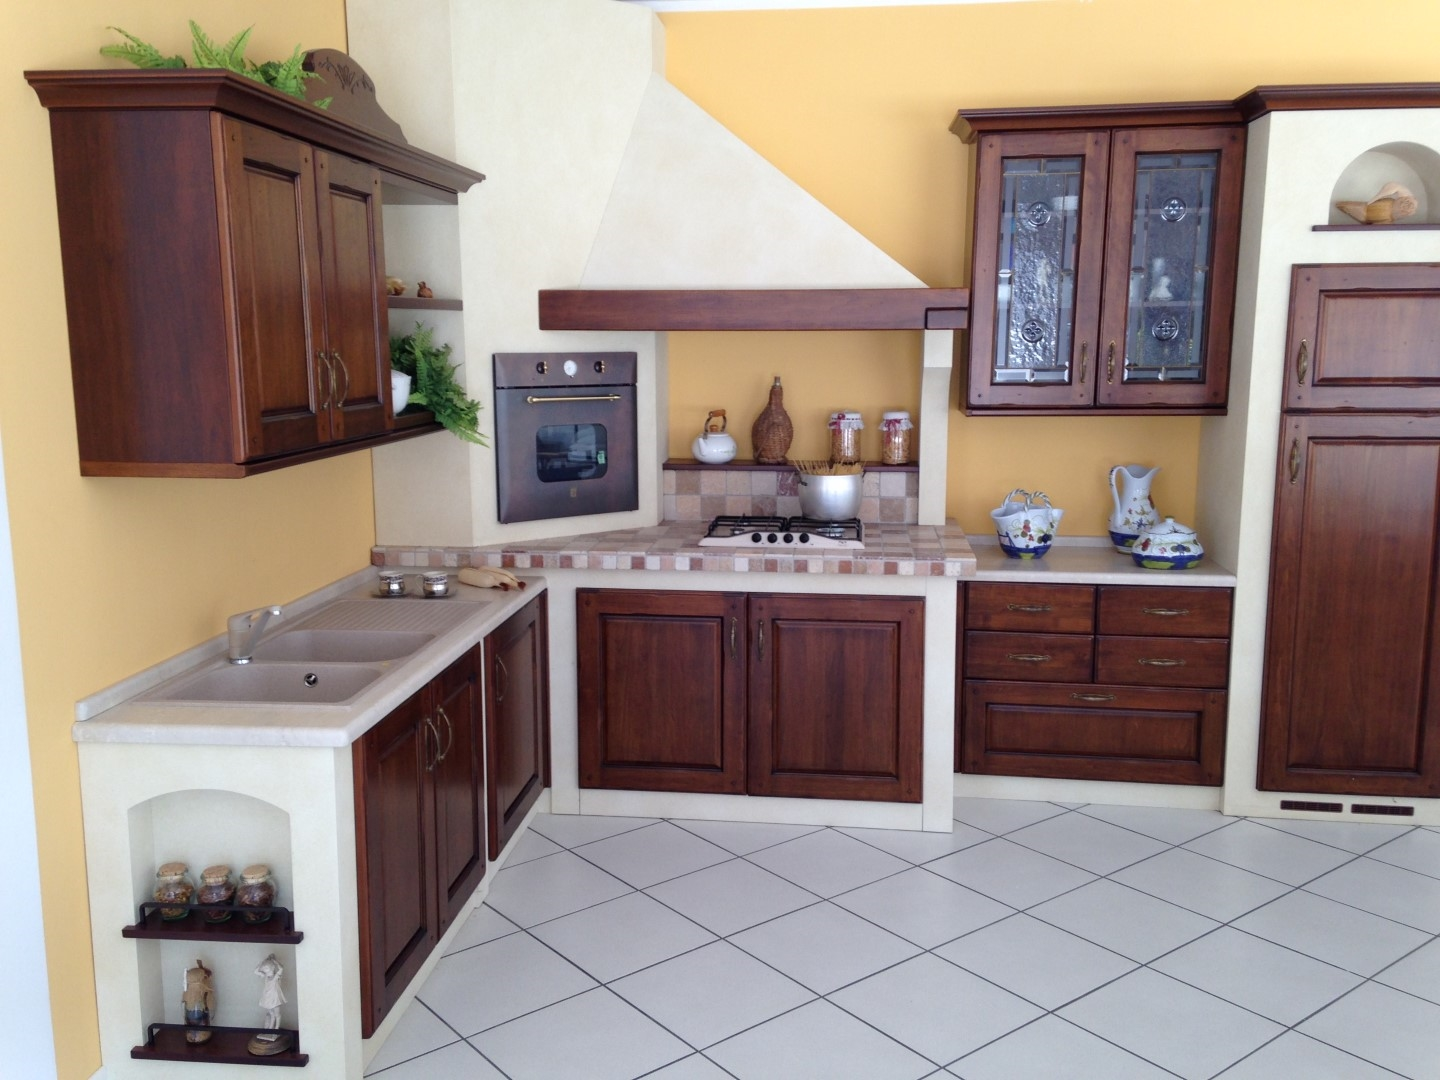 Cucine Rustiche In Muratura. Great Gallery Fianchi Per Cucine In ...